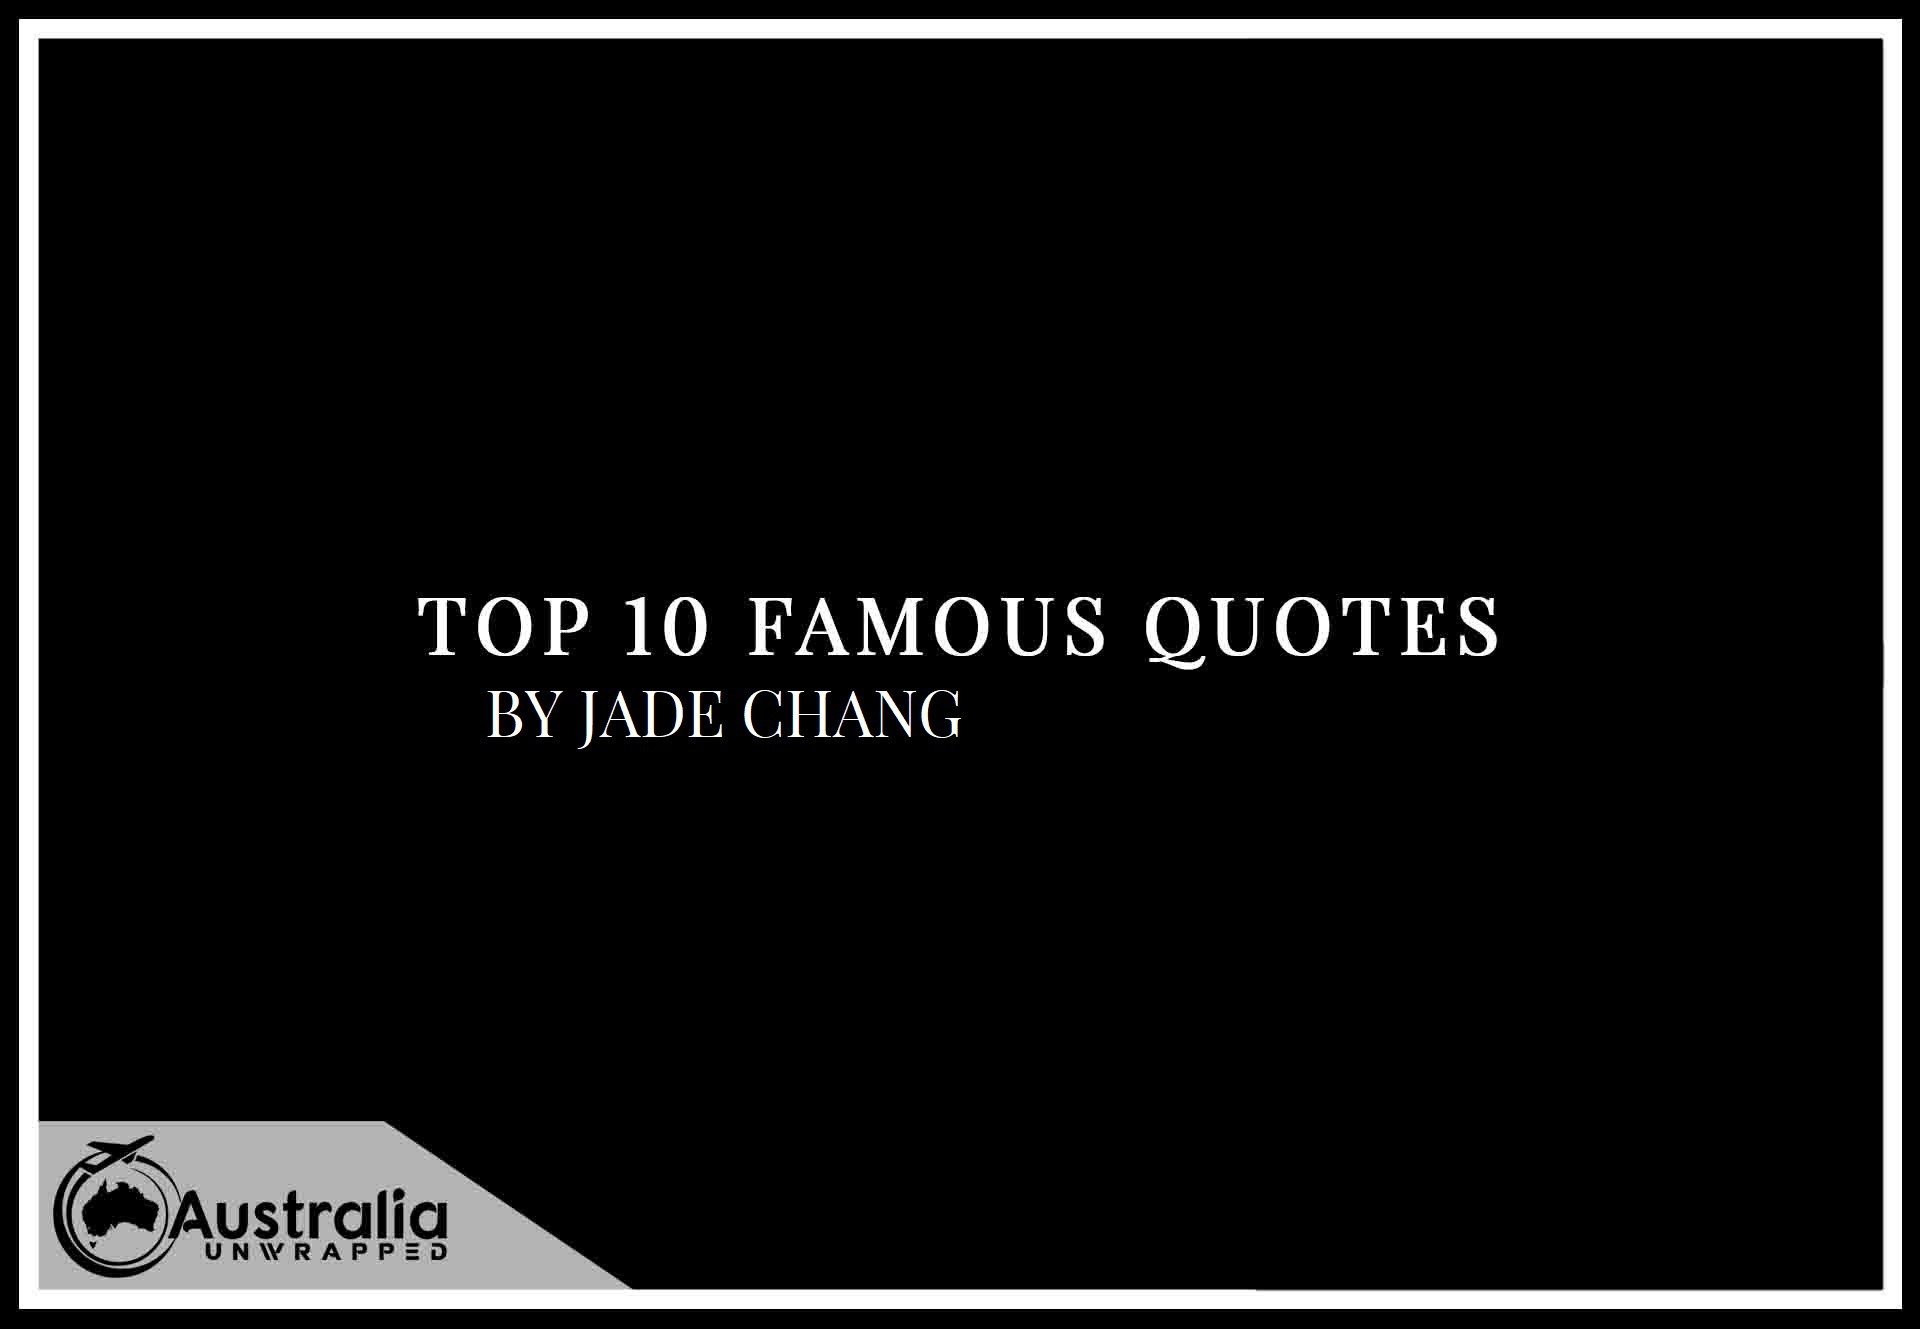 Top 10 Famous Quotes by Author Jade Chang